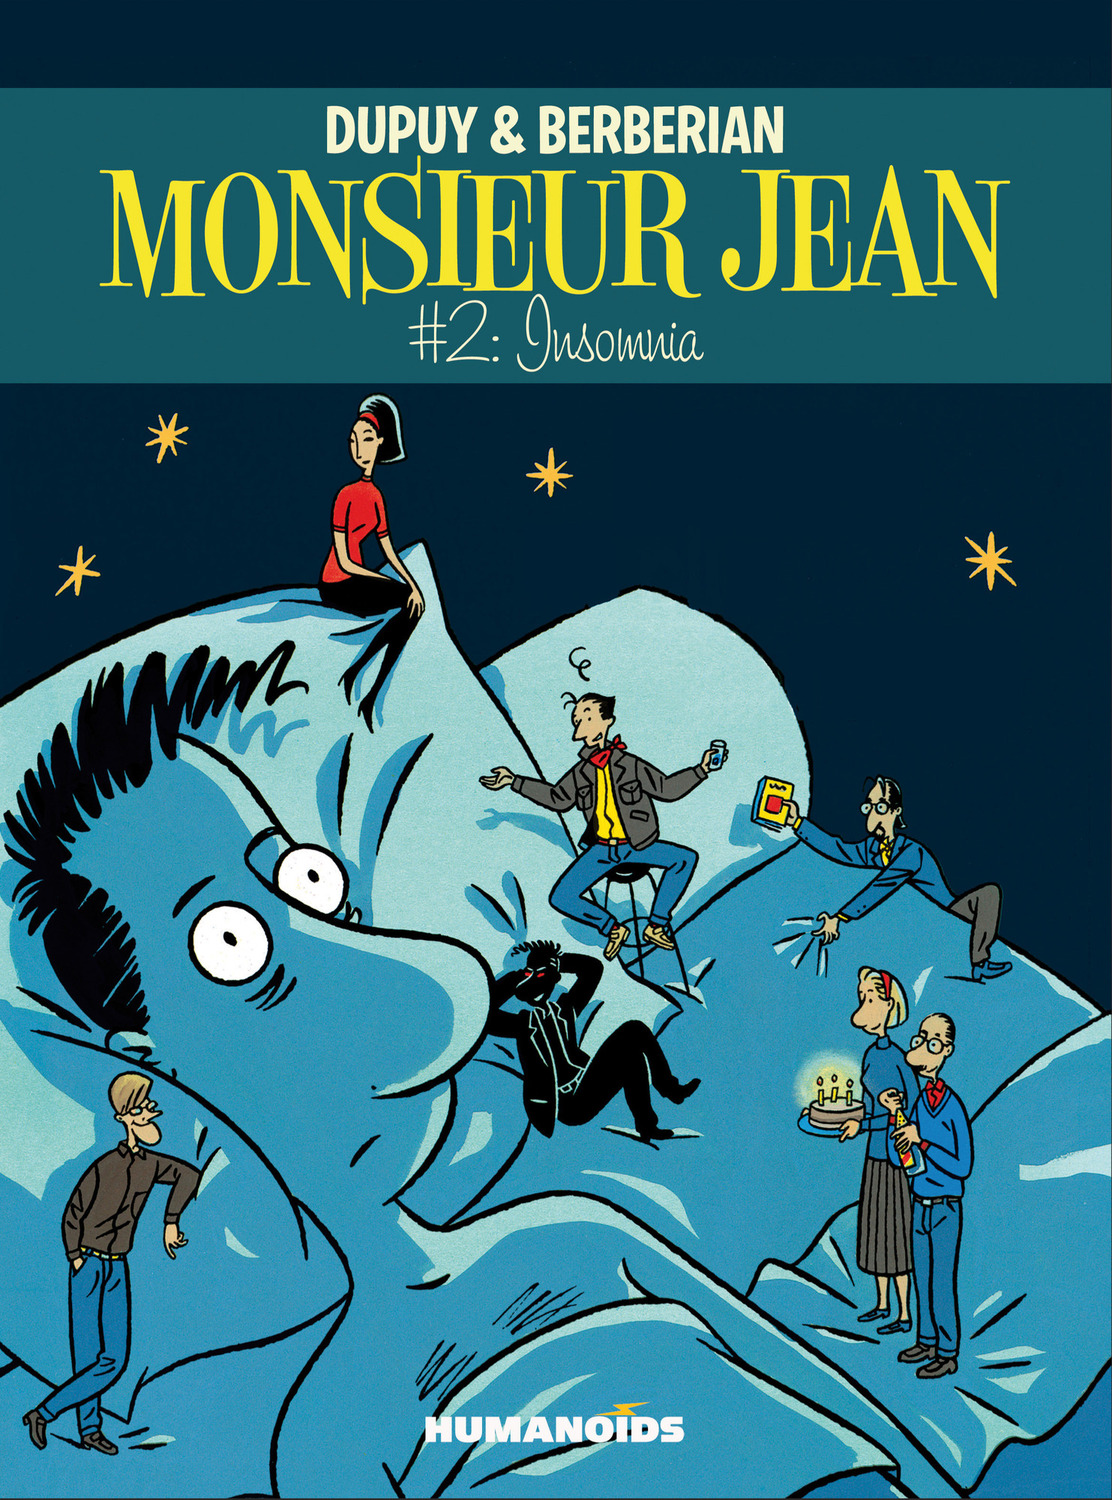 Monsieur Jean #2 : Insomnia - Digital Comic